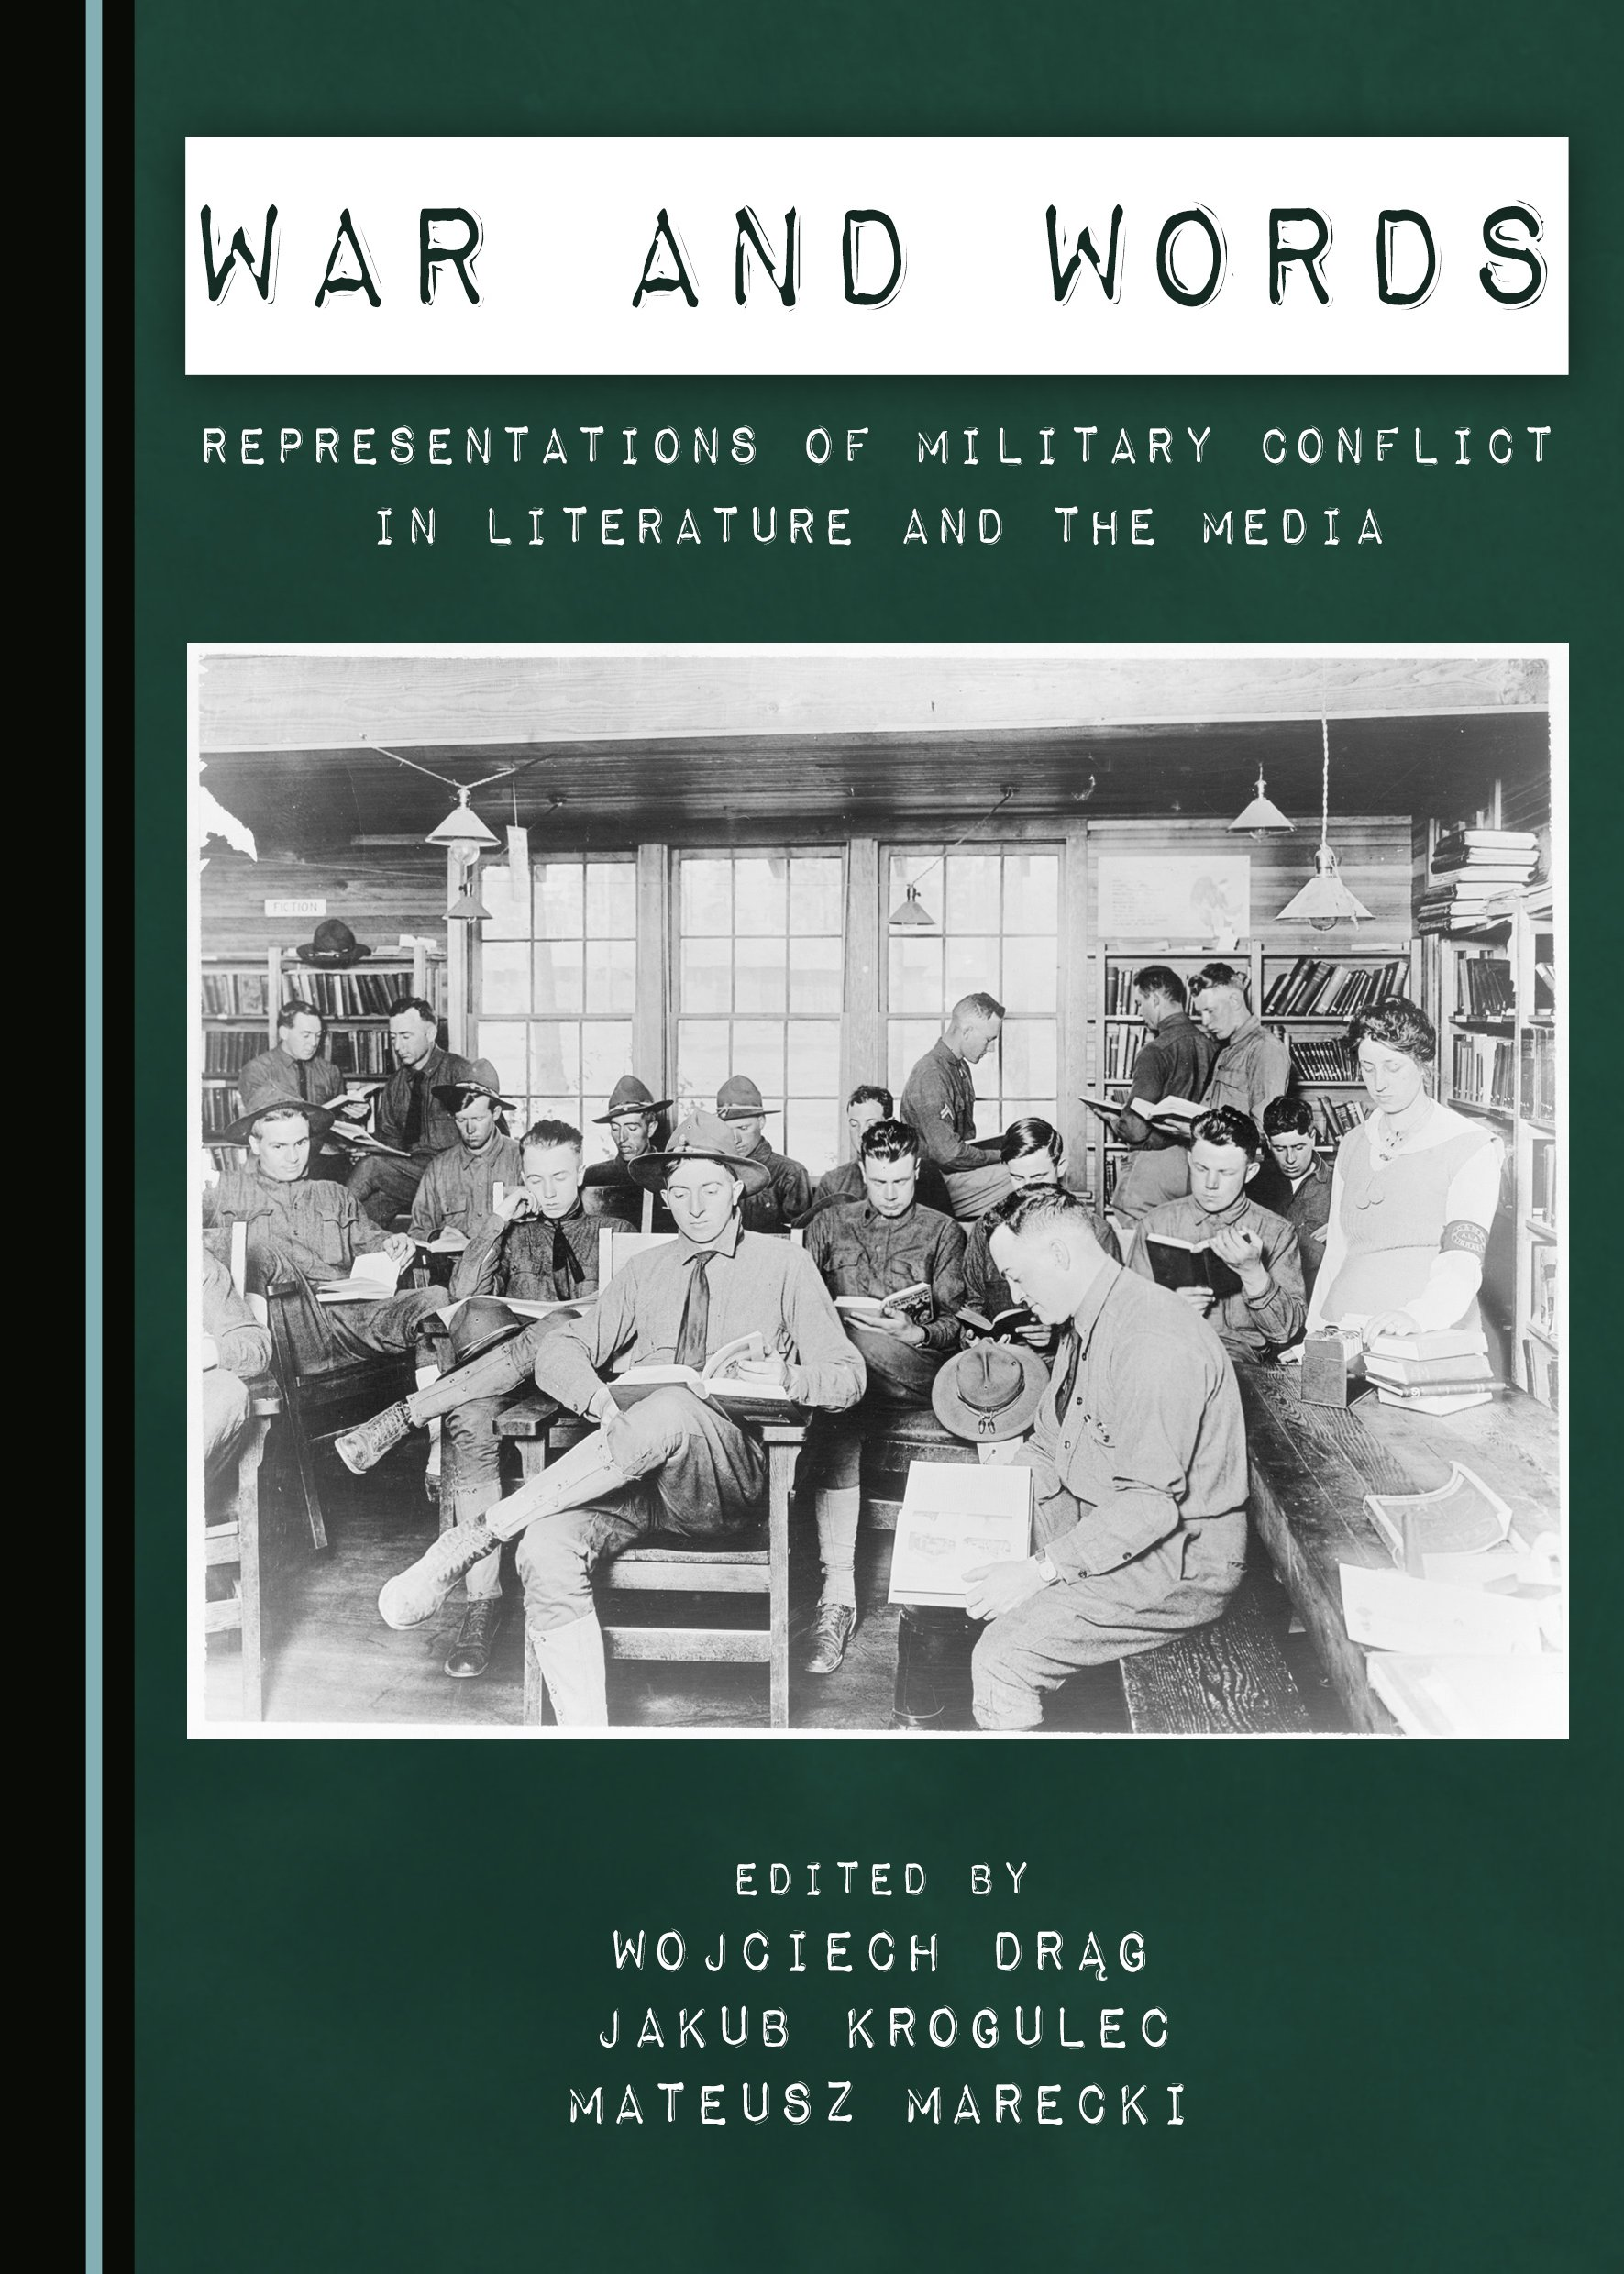 War and Words: Representations of Military Conflict in Literature and the Media